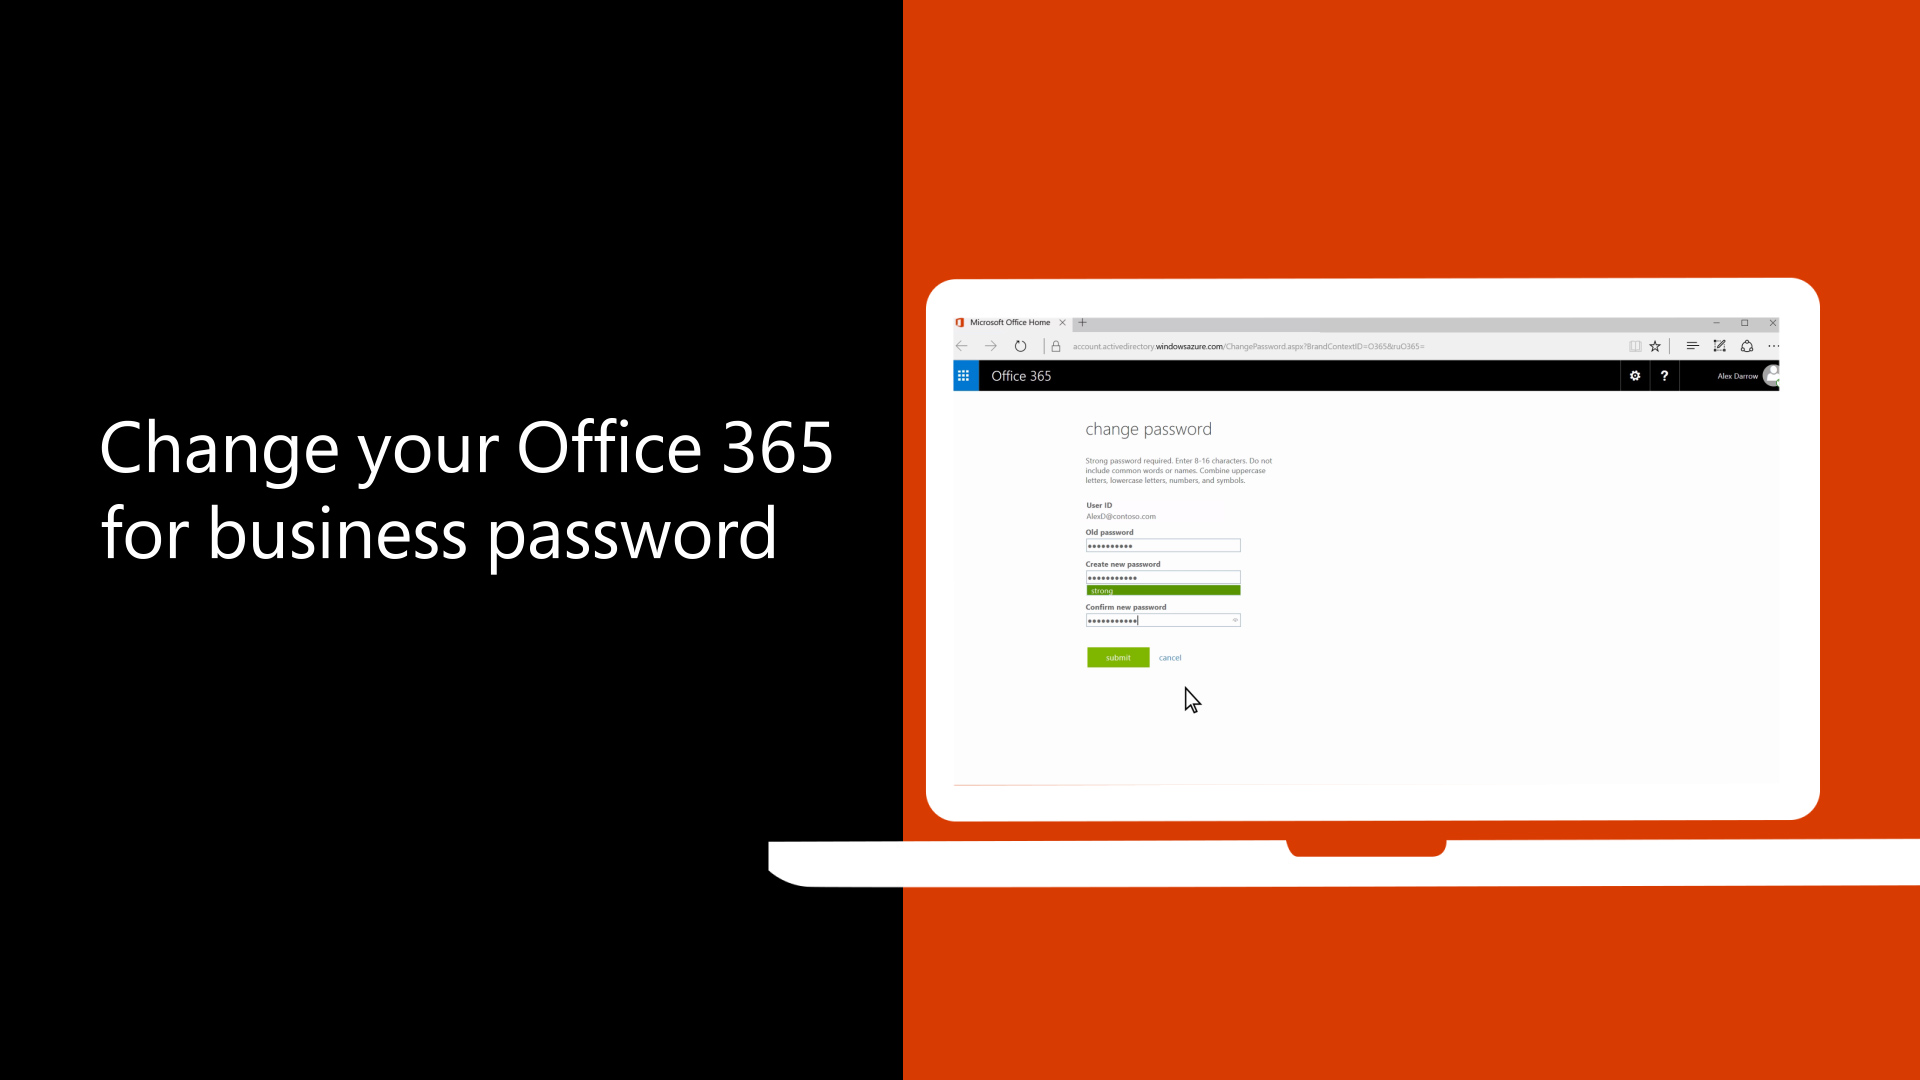 Change your Office 365 for business password